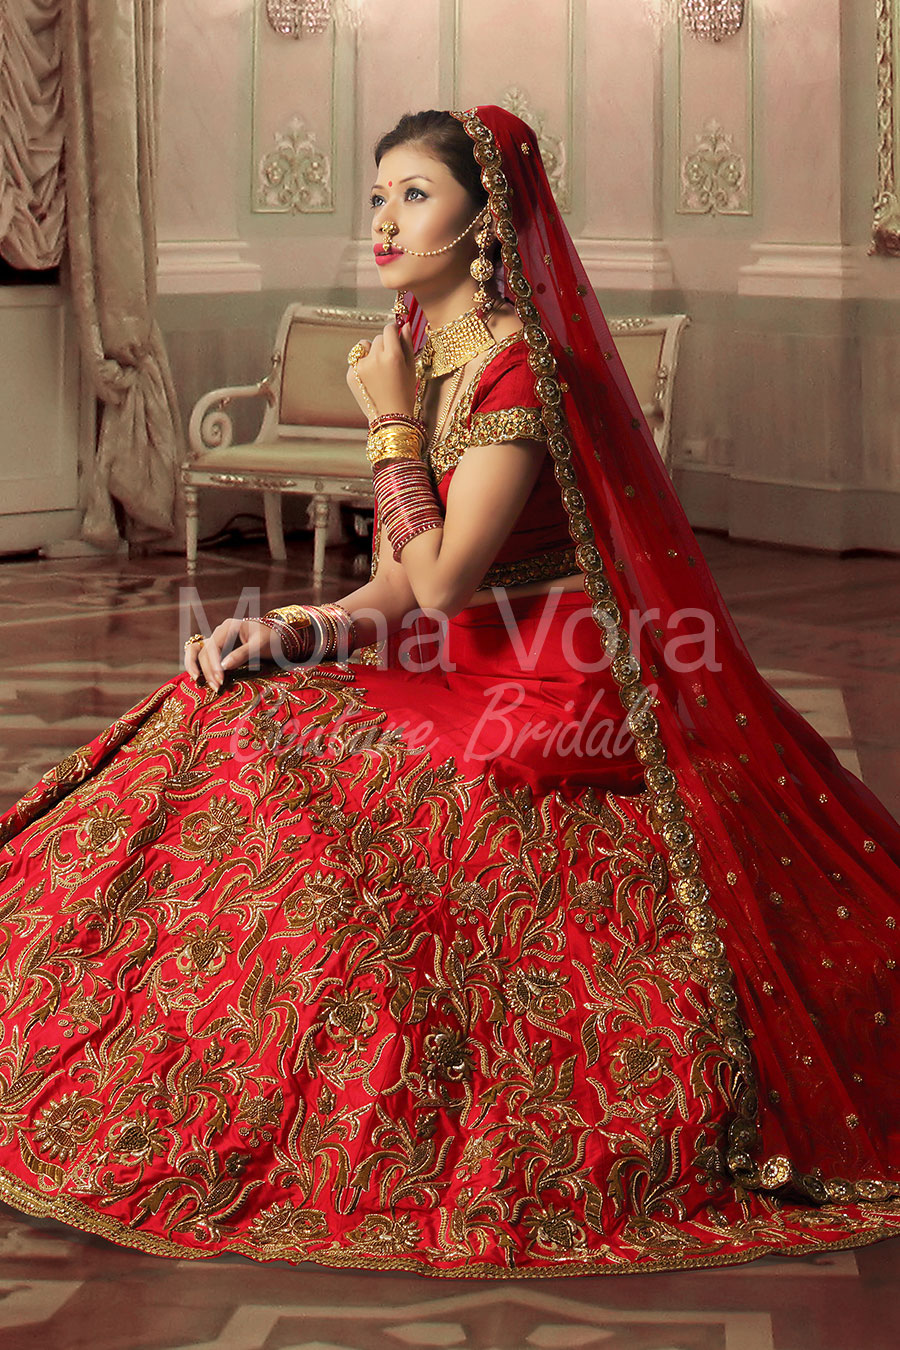 Indian Wedding Dresses & Bridal Dresses  Large Range Of. Vintage Wedding Dresses Savannah Ga. Red And Black Wedding Dresses For Sale. Lace Wedding Dress With Open Back. Wedding Dresses Sweetheart Neckline Mermaid Style With Bling. Wedding Dresses Drop Waist Strapless. Used Bohemian Wedding Dresses For Sale. Lace Tulle Wedding Dress Plus Size. Traditional Wedding Dress Japanese